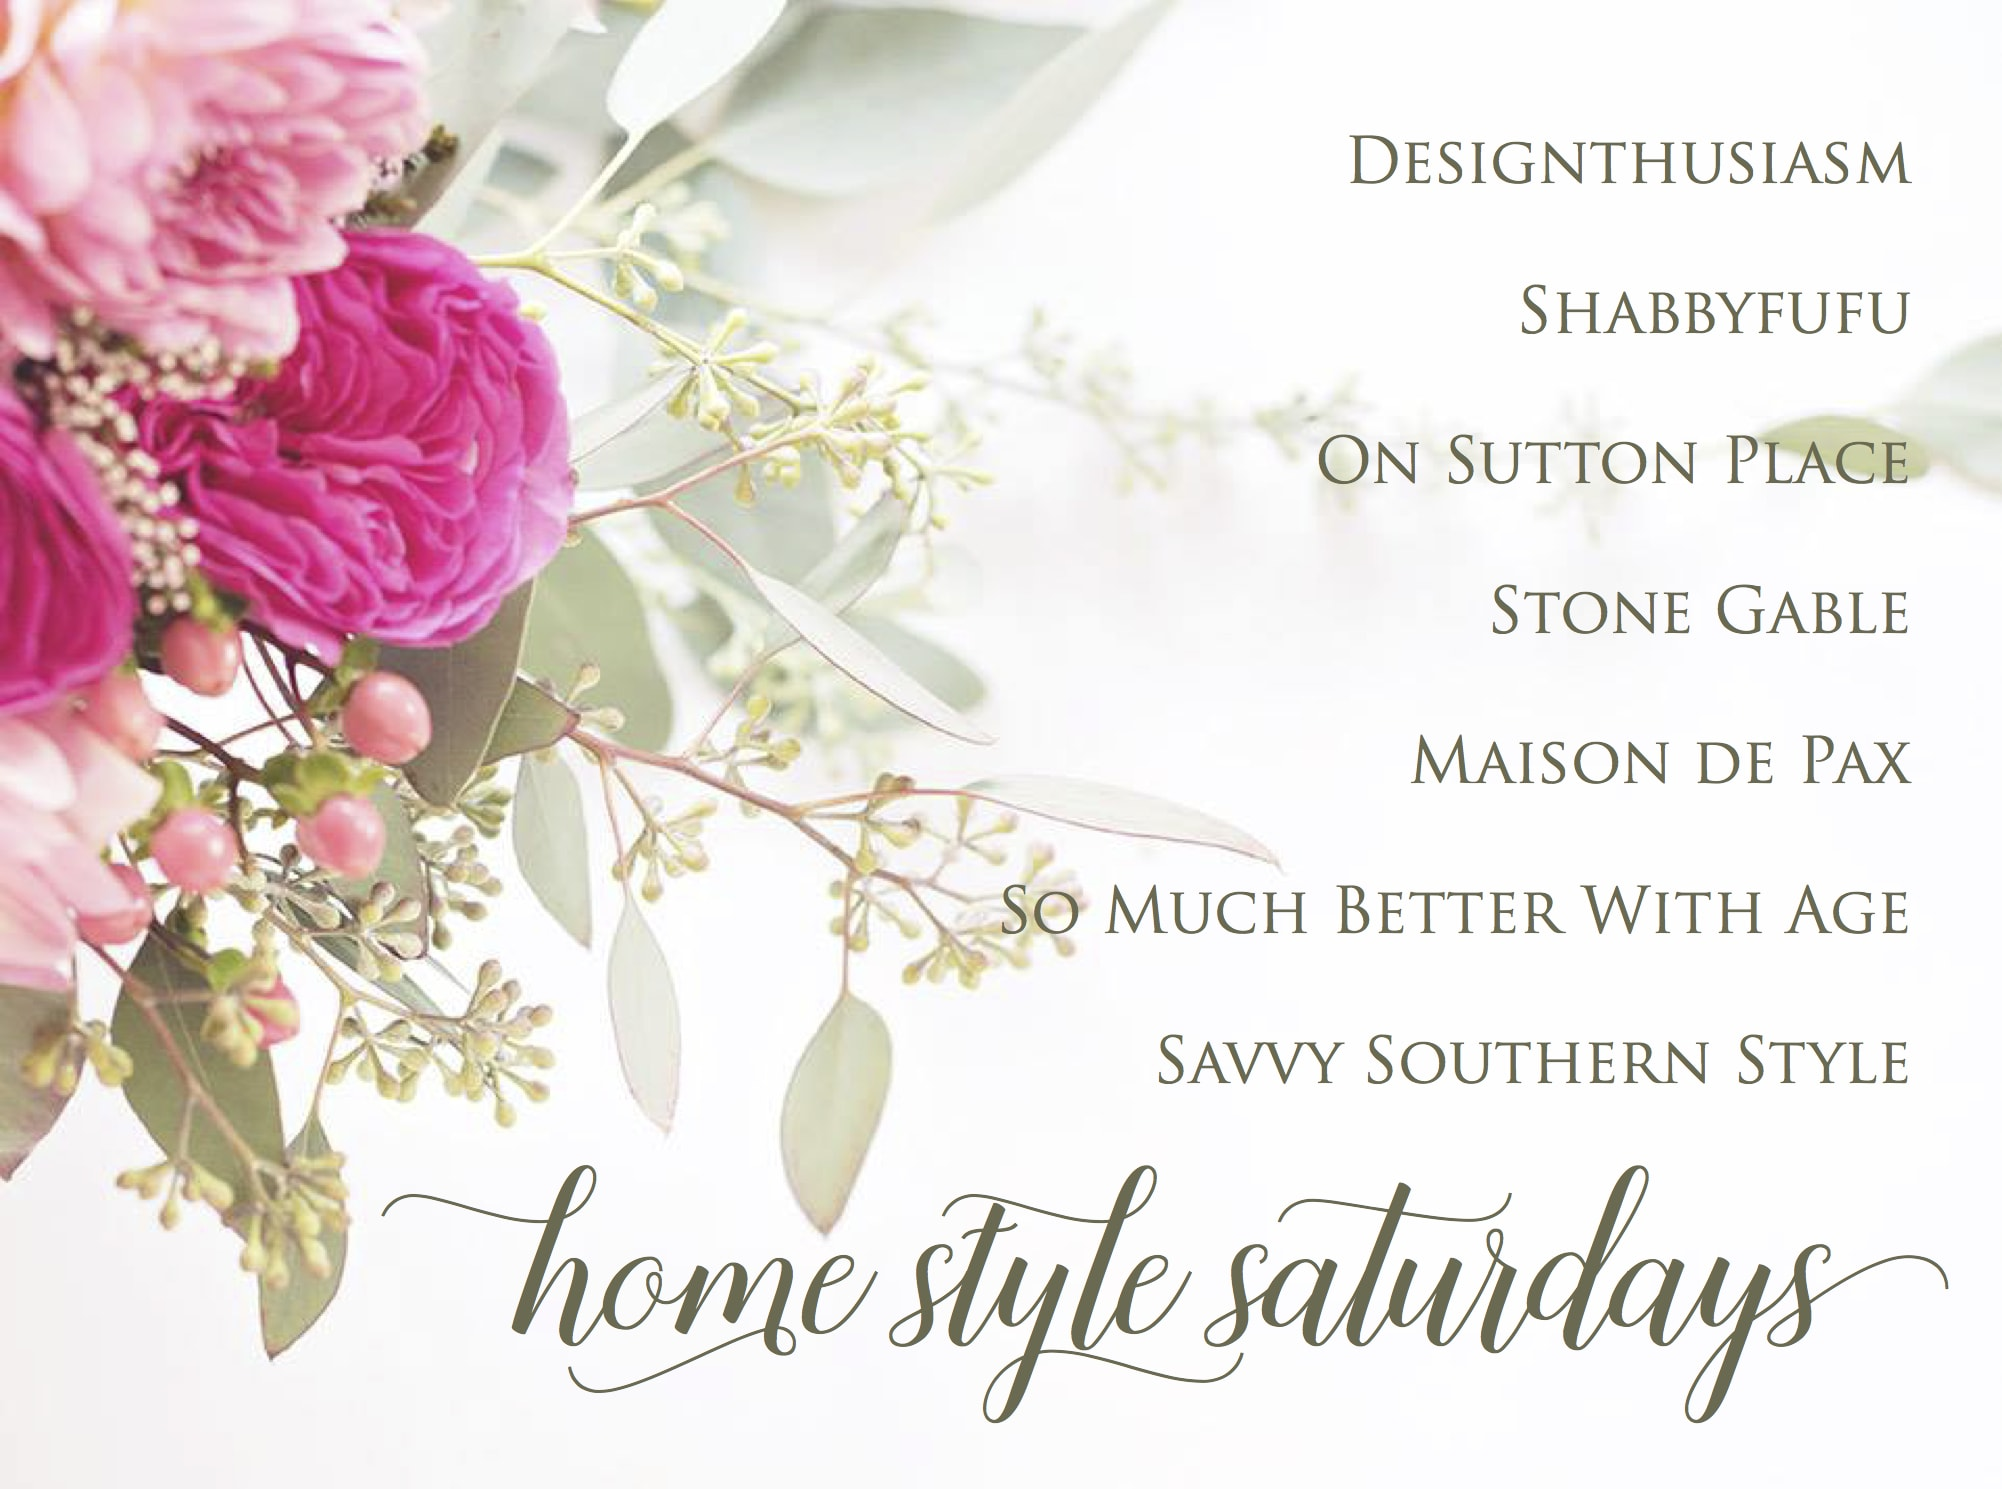 Home Style Saturdays